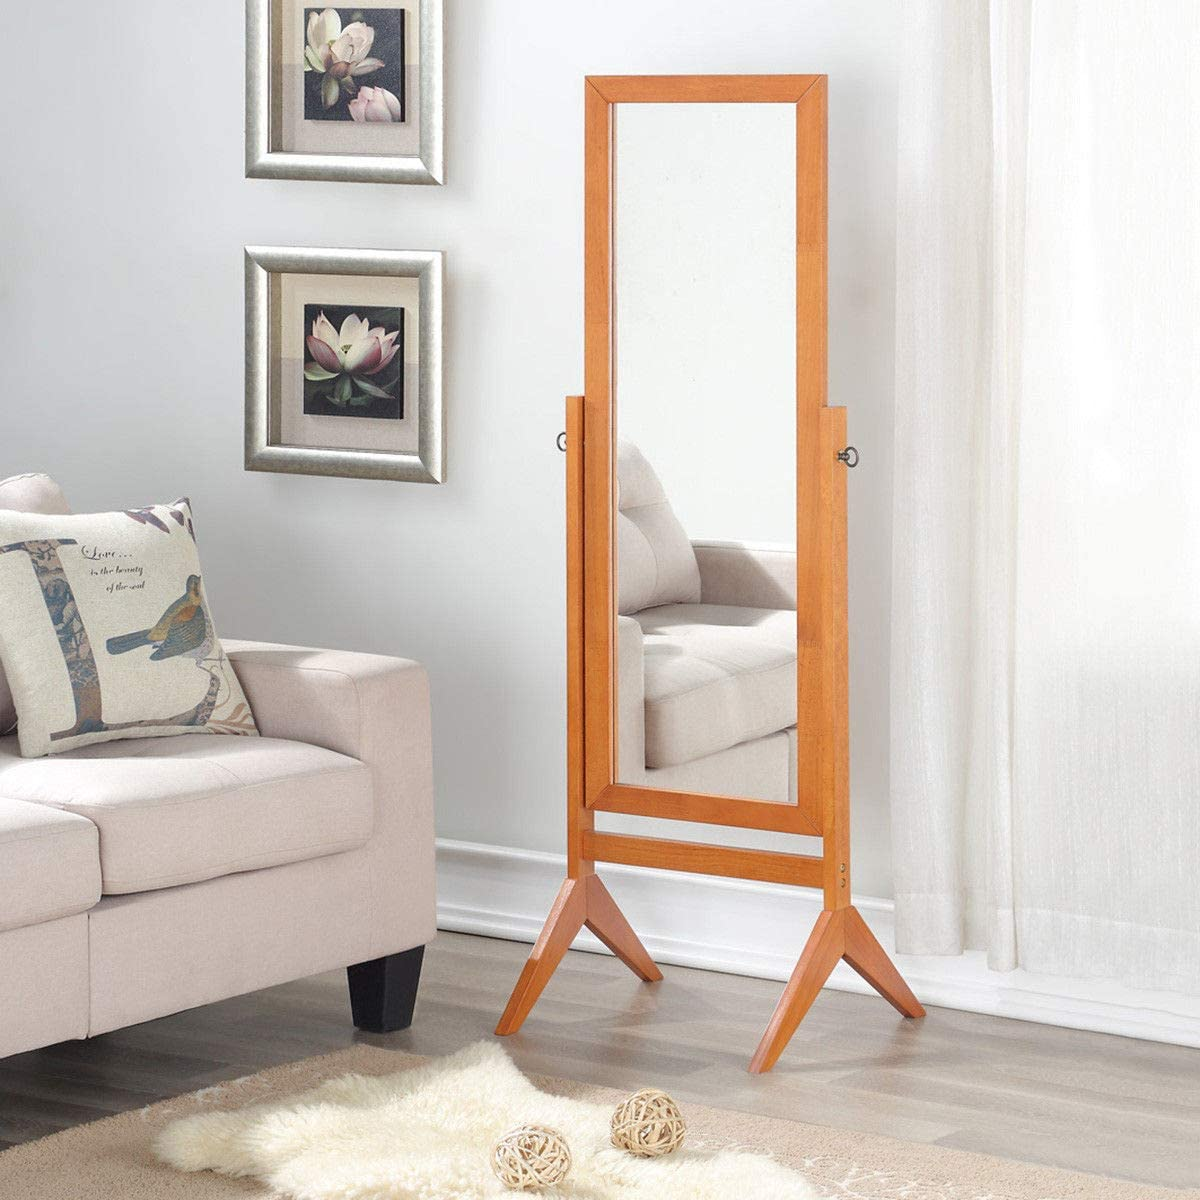 Walnut 100/% Solid Oak Wood Frame Rustic Rotary Swivel Mirrorred Stand Rectangular Mirrors Free Standing Home Floor Dressing Mirror Giantex Bedroom Wooden Floor Mirror Full Length Cheval